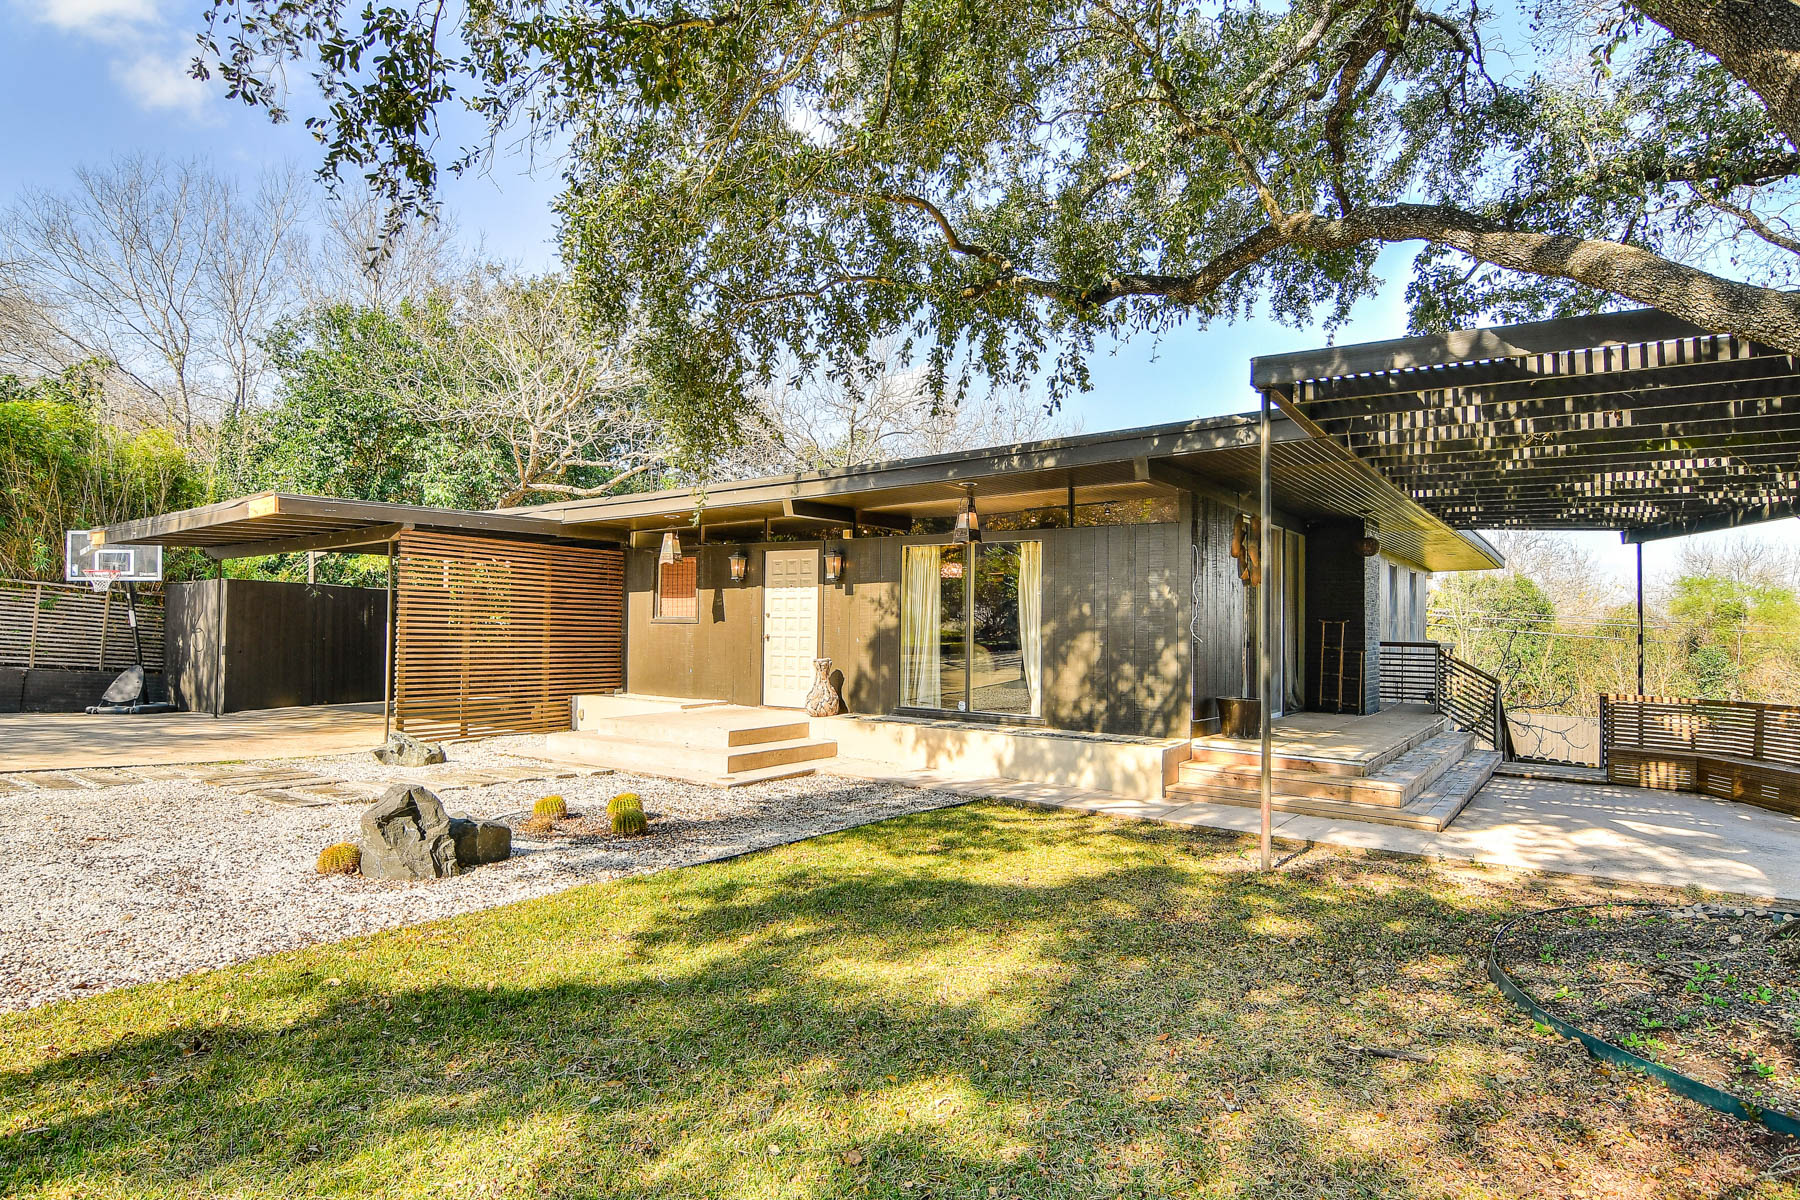 Single Family Home for Sale at Mid-Century Home in Terrell Hills 805 Ridgemont Ave San Antonio, Texas 78209 United States